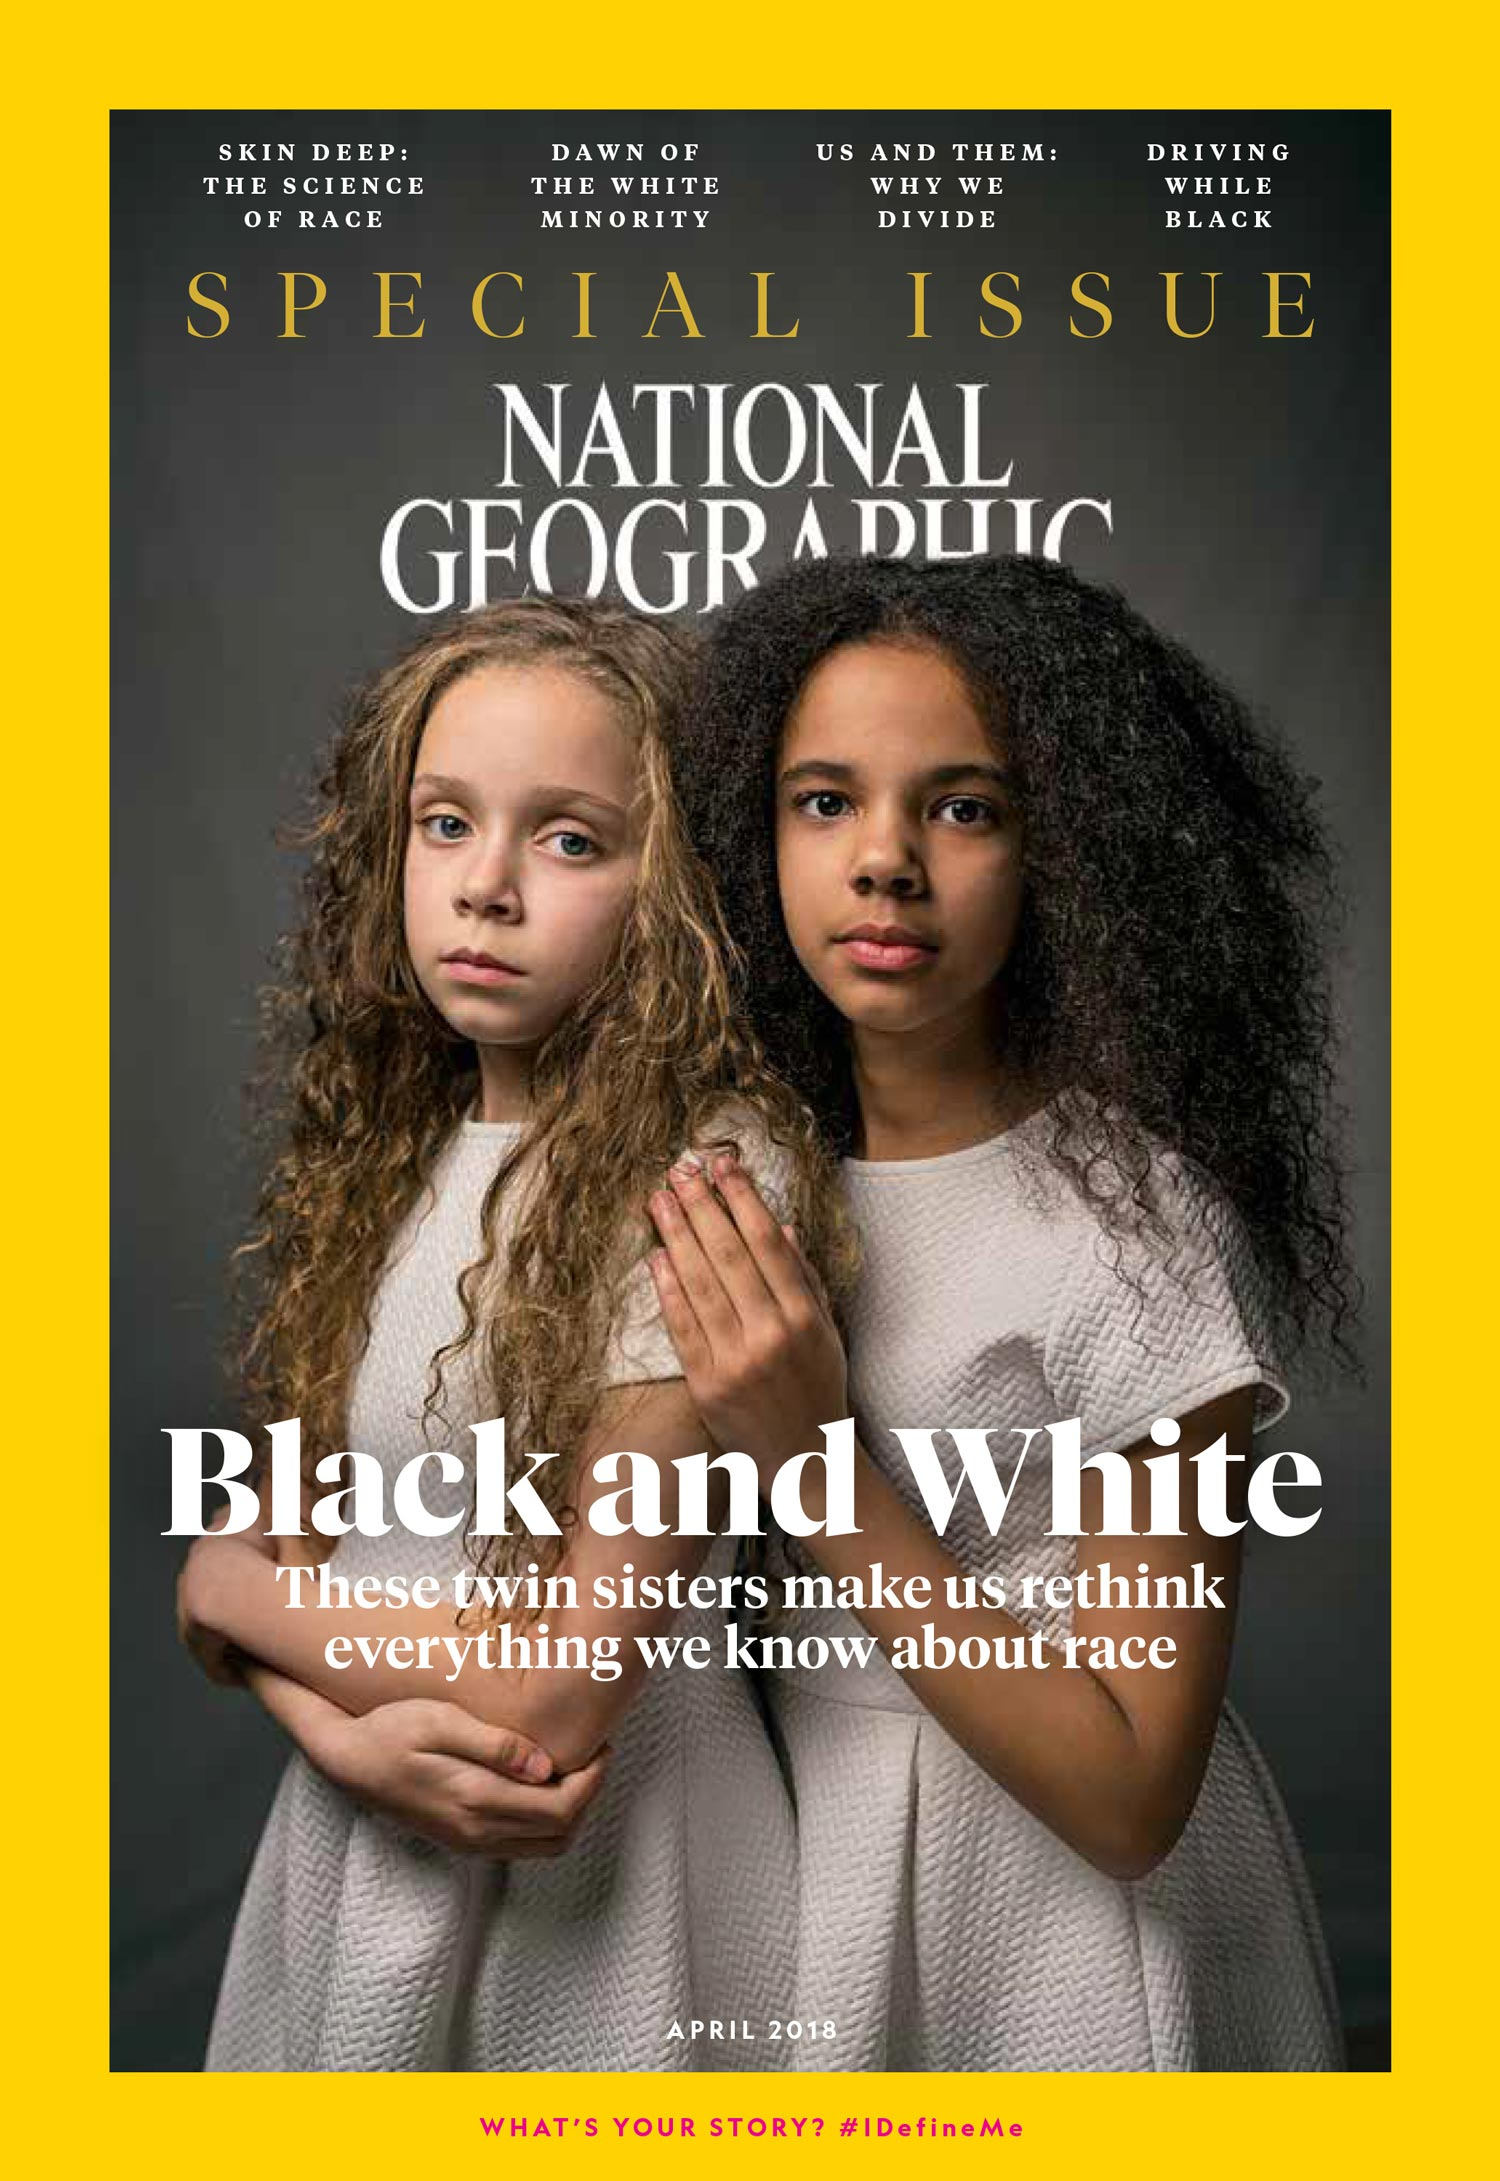 UVA Historian Leads National Geographic's Unusual Self-Examination